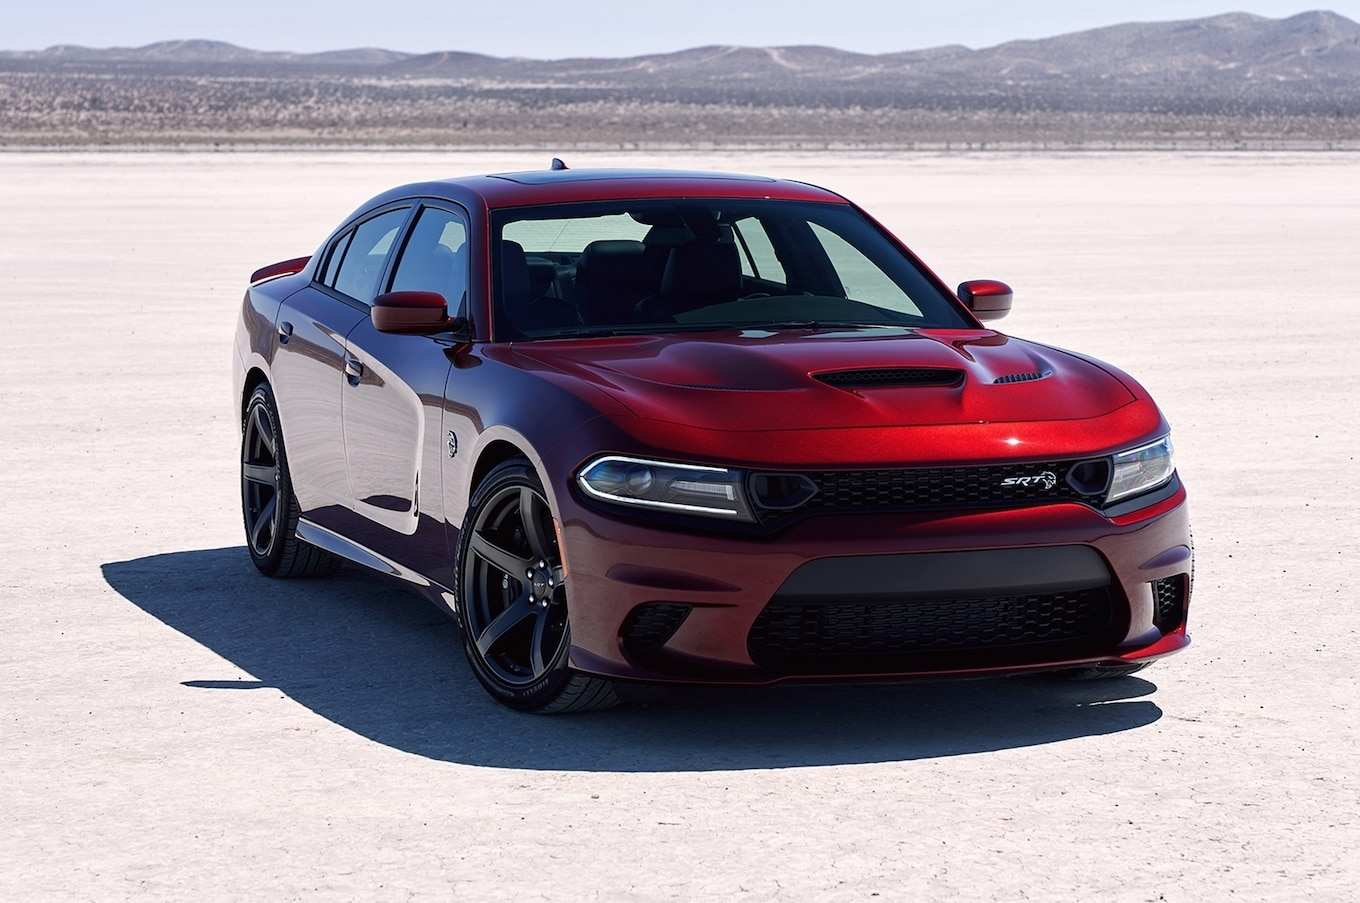 30 Concept of 2019 Dodge Dart Srt New Review by 2019 Dodge Dart Srt